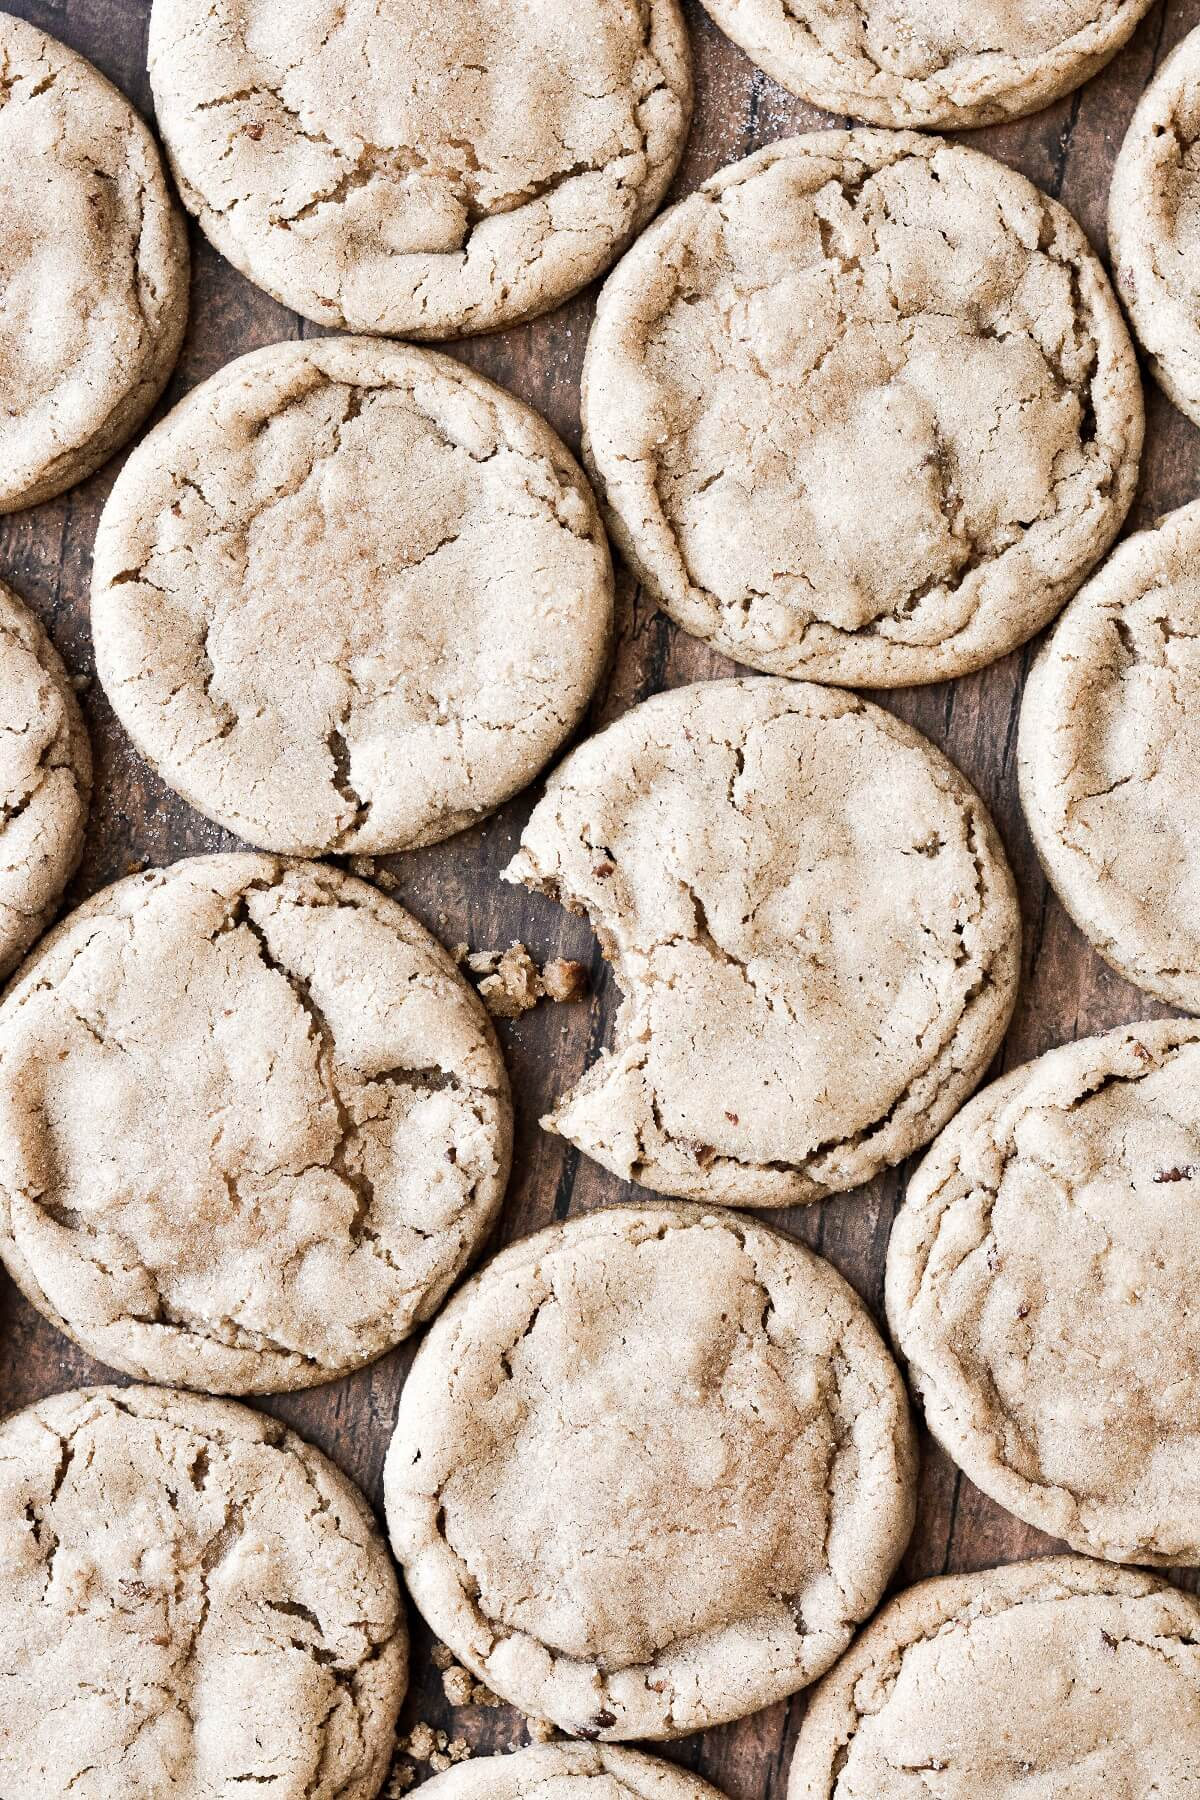 Appledoodles (apple cider cookies) on a wooden board, one with a bite taken.